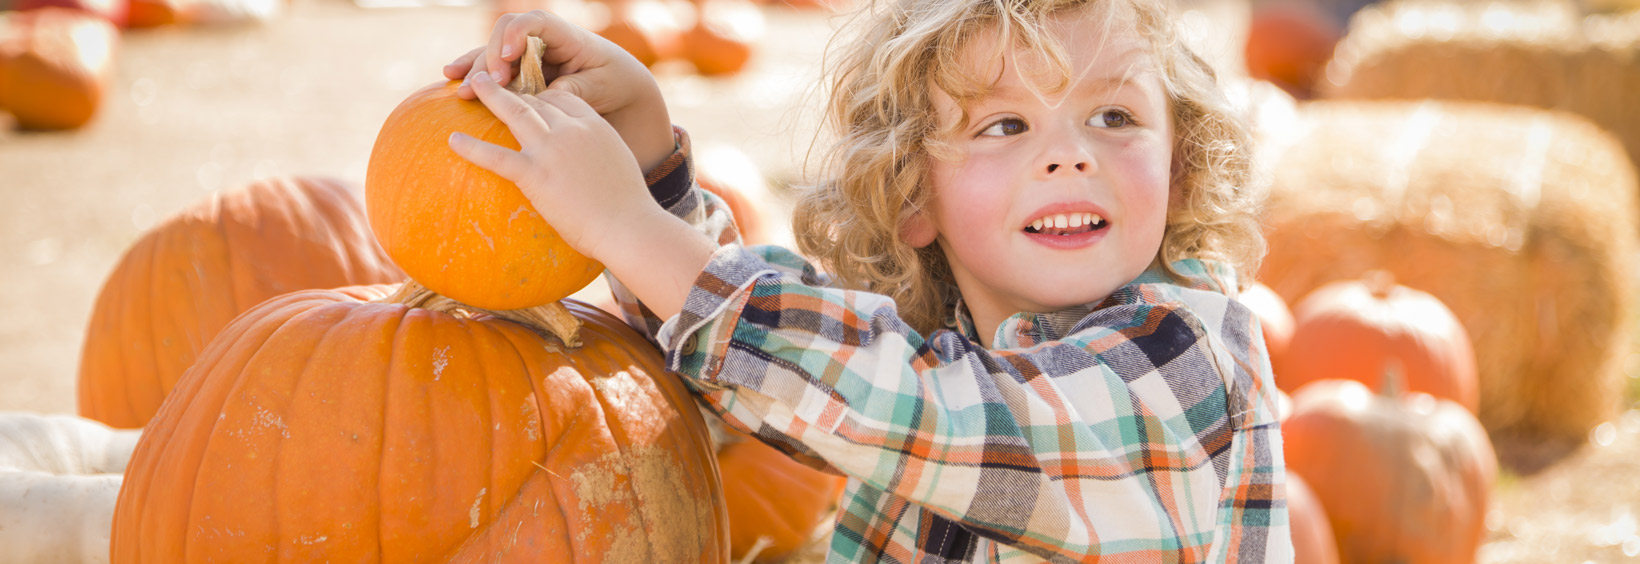 The Top 10 Places to Go Pumpkin Picking in Rockland County, NY & Nearby